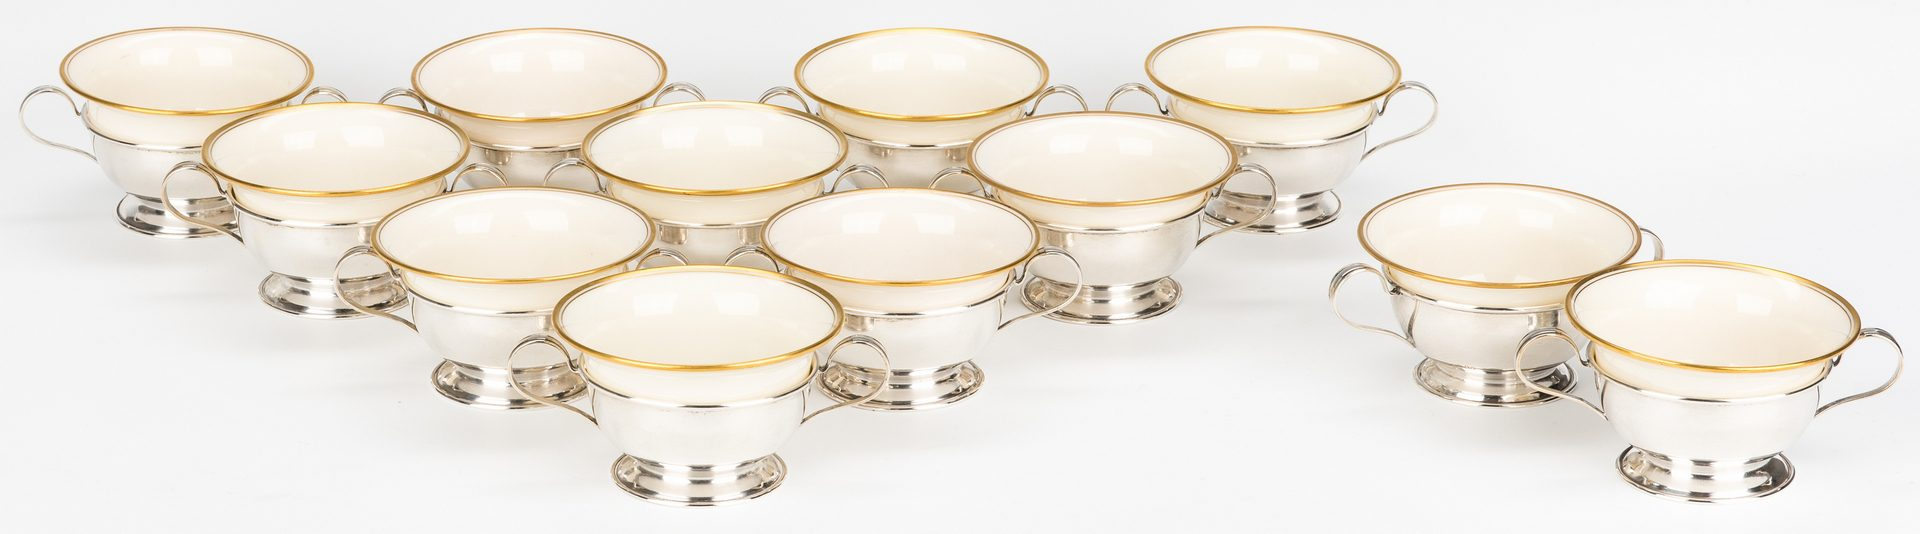 Lot 637: 12 Sterling Demitasse Cups w/ Inserts & 6 Sterling Sorbet Cups